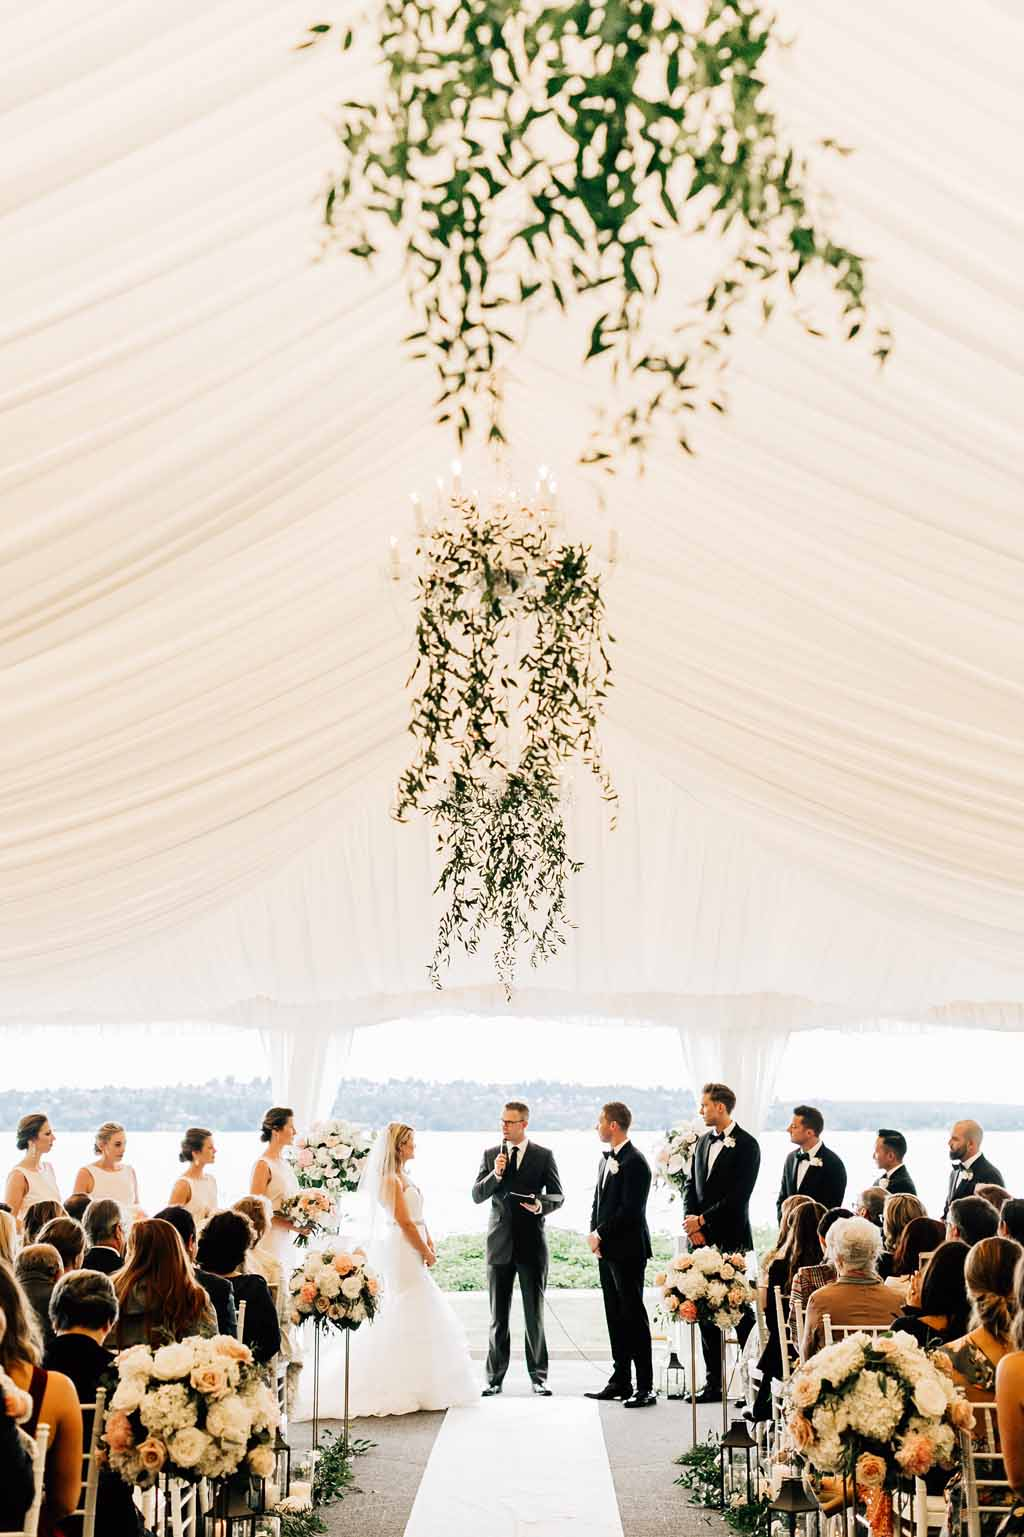 Wedding ceremony in tent at Lake Washington with greenery trailing from chandeliers